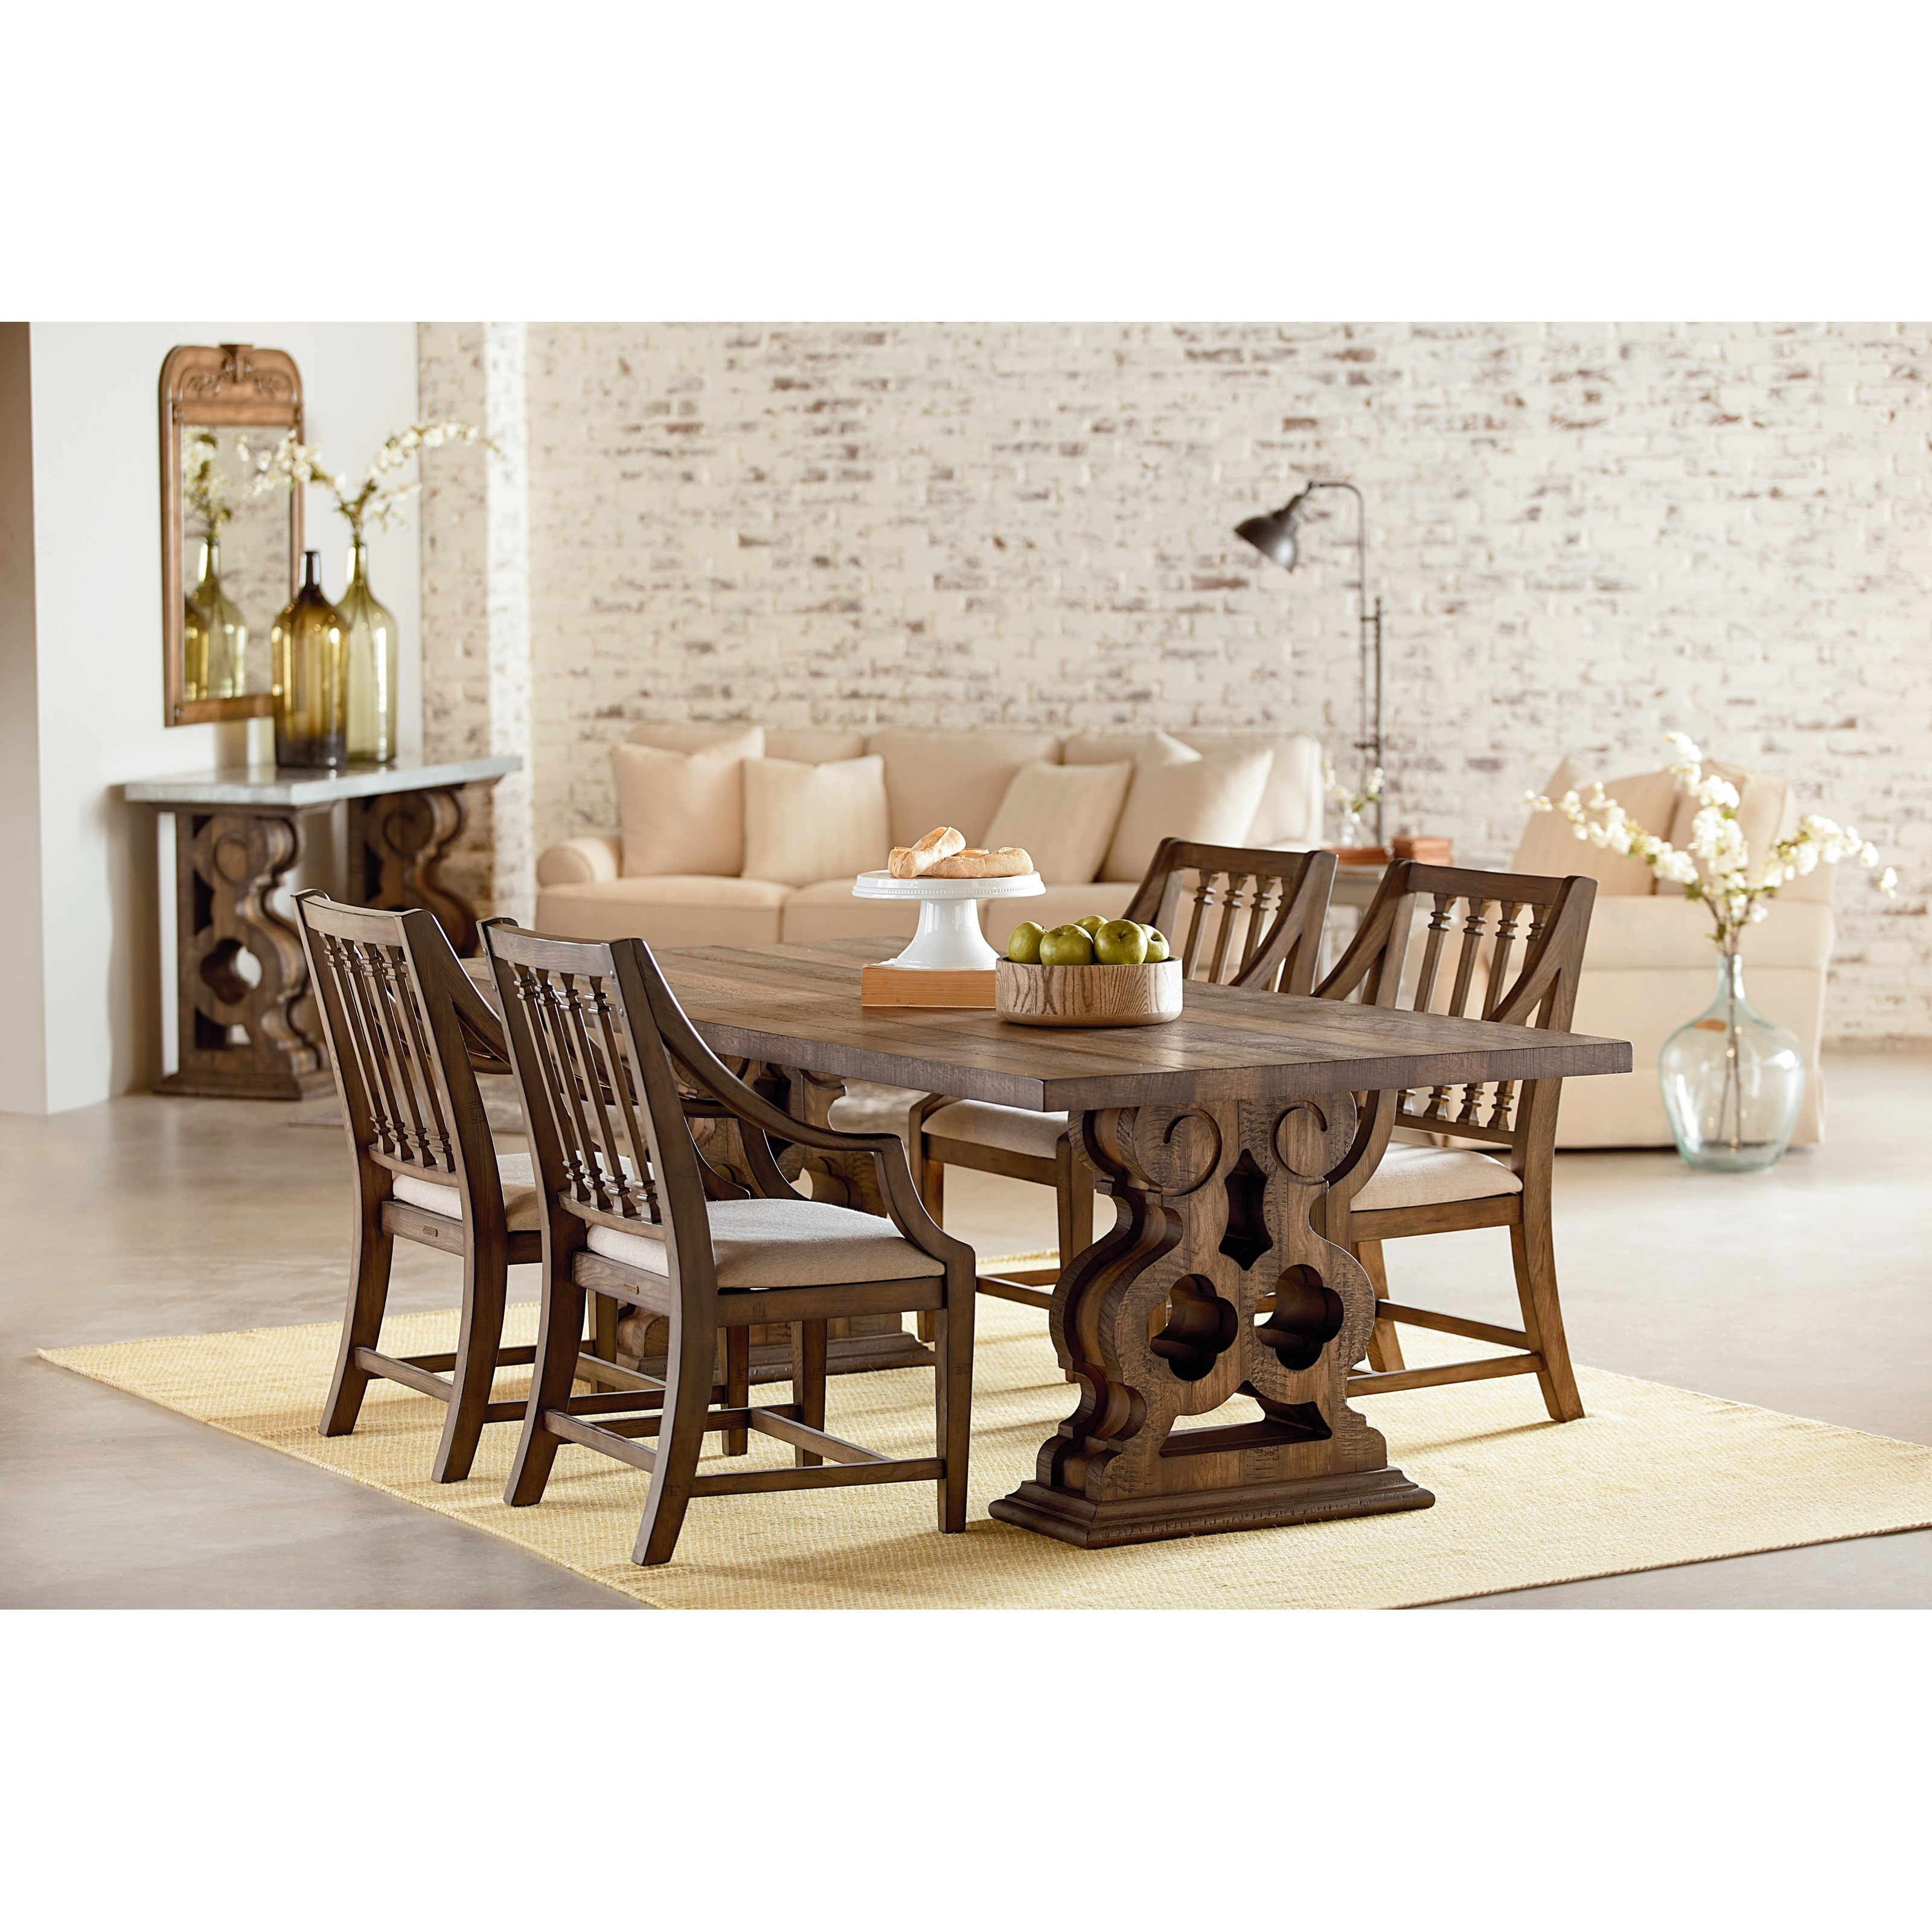 Magnolia Home By Joanna Gaines Traditional Traditional Double Pedestal Dining Room Olinde 39 S